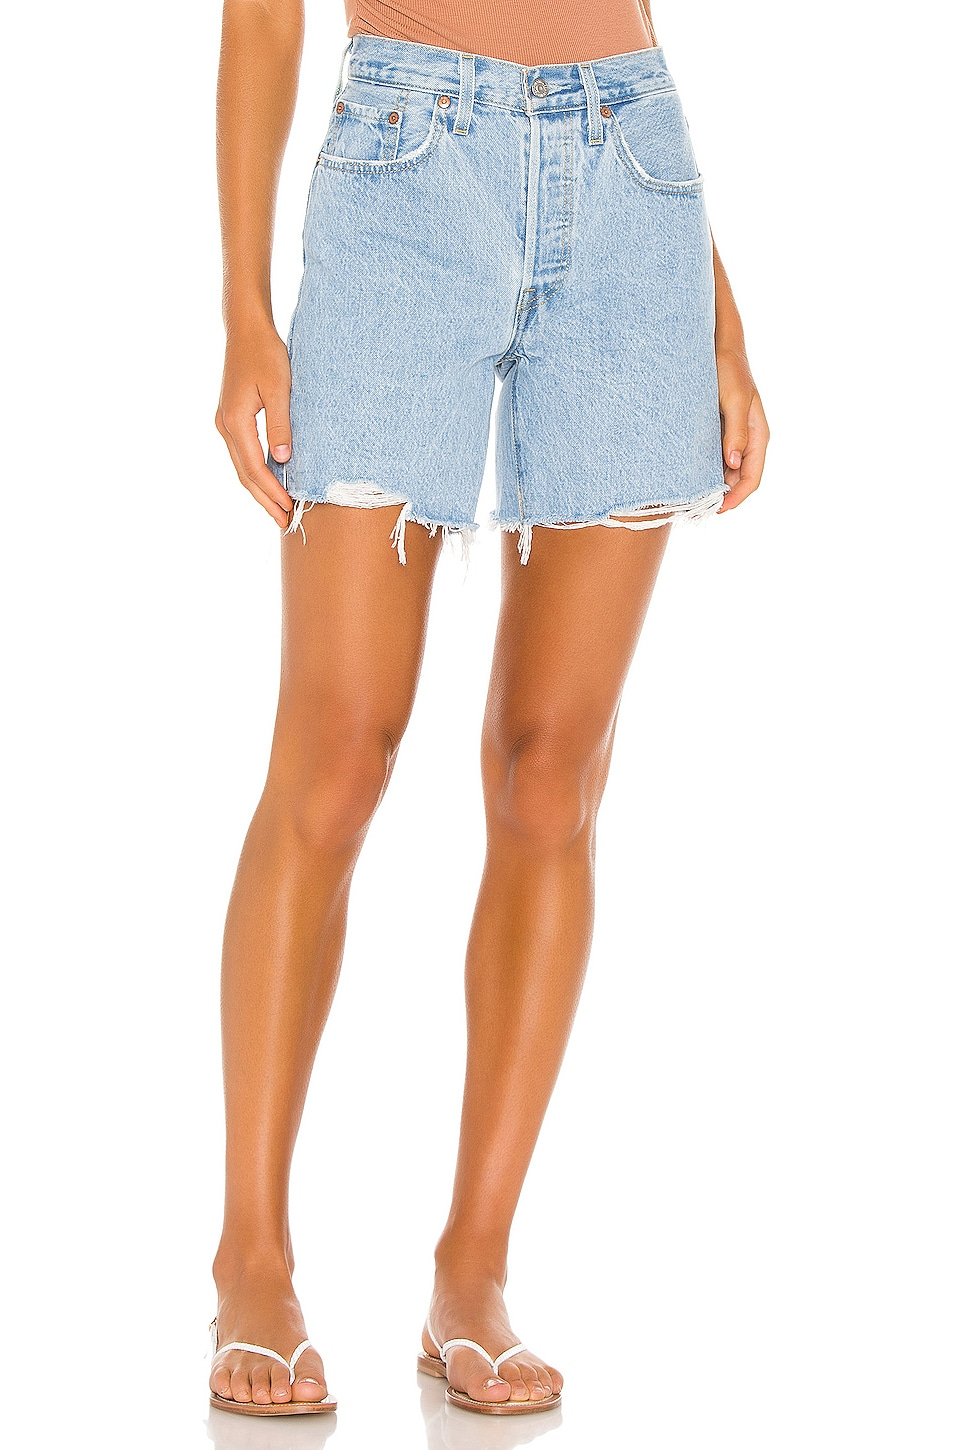 501 Mid Thigh Short             LEVI'S                                                                                                       CA$ 94.58 9